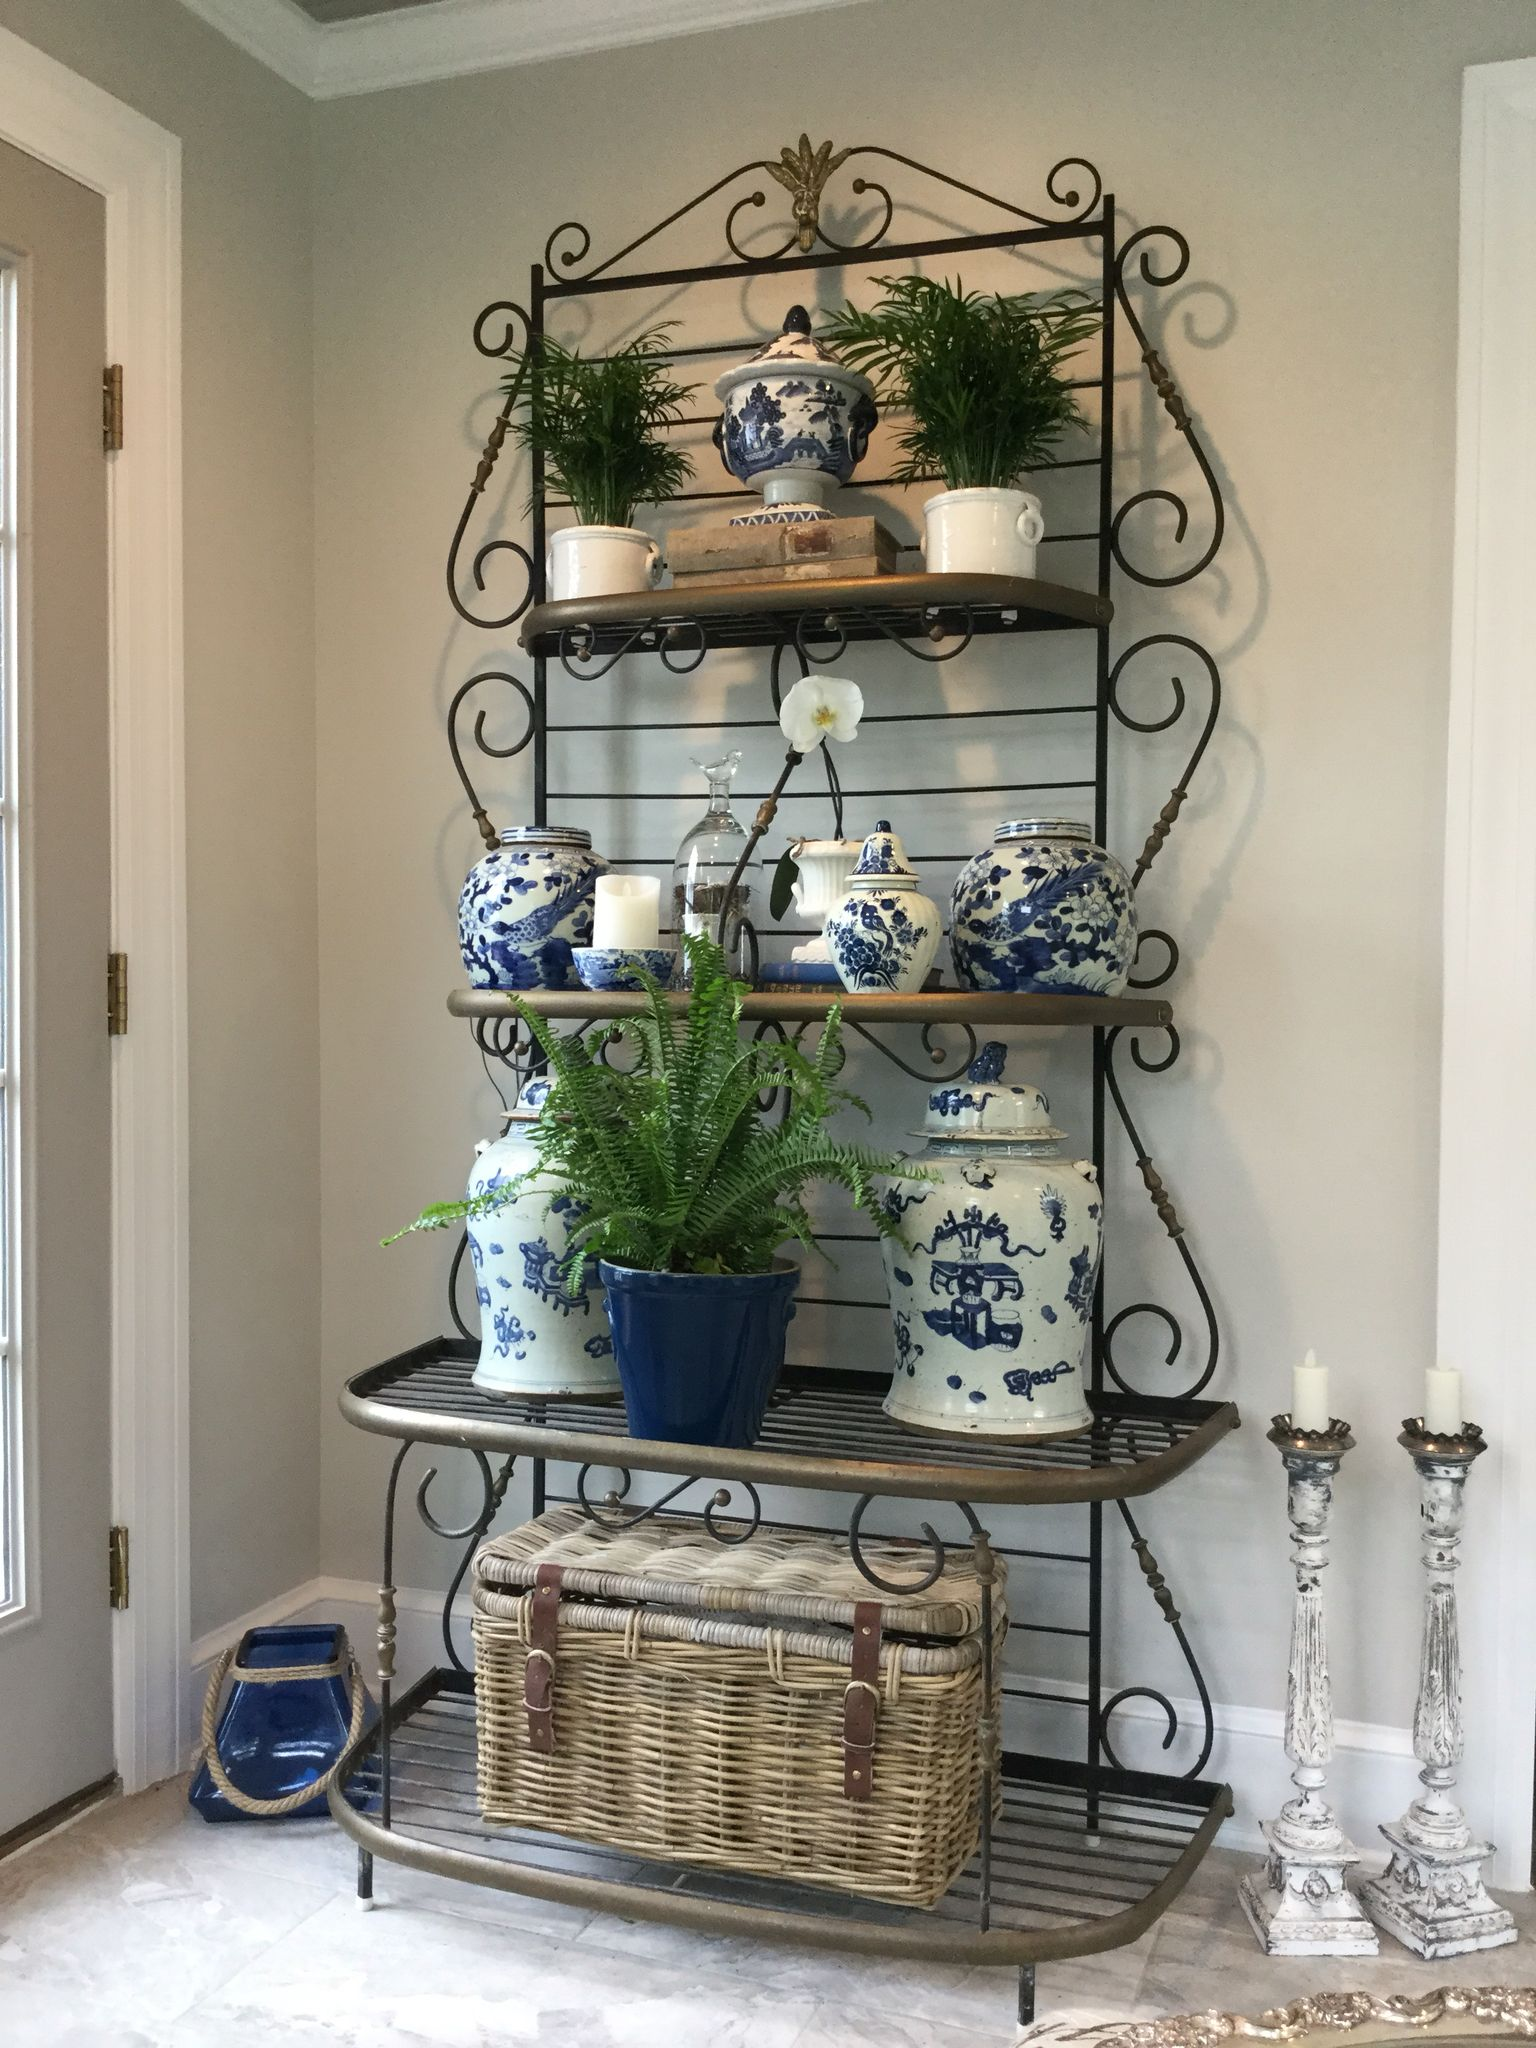 Bakers rack decoration ideas | Decor | Pinterest | Bakers rack ...